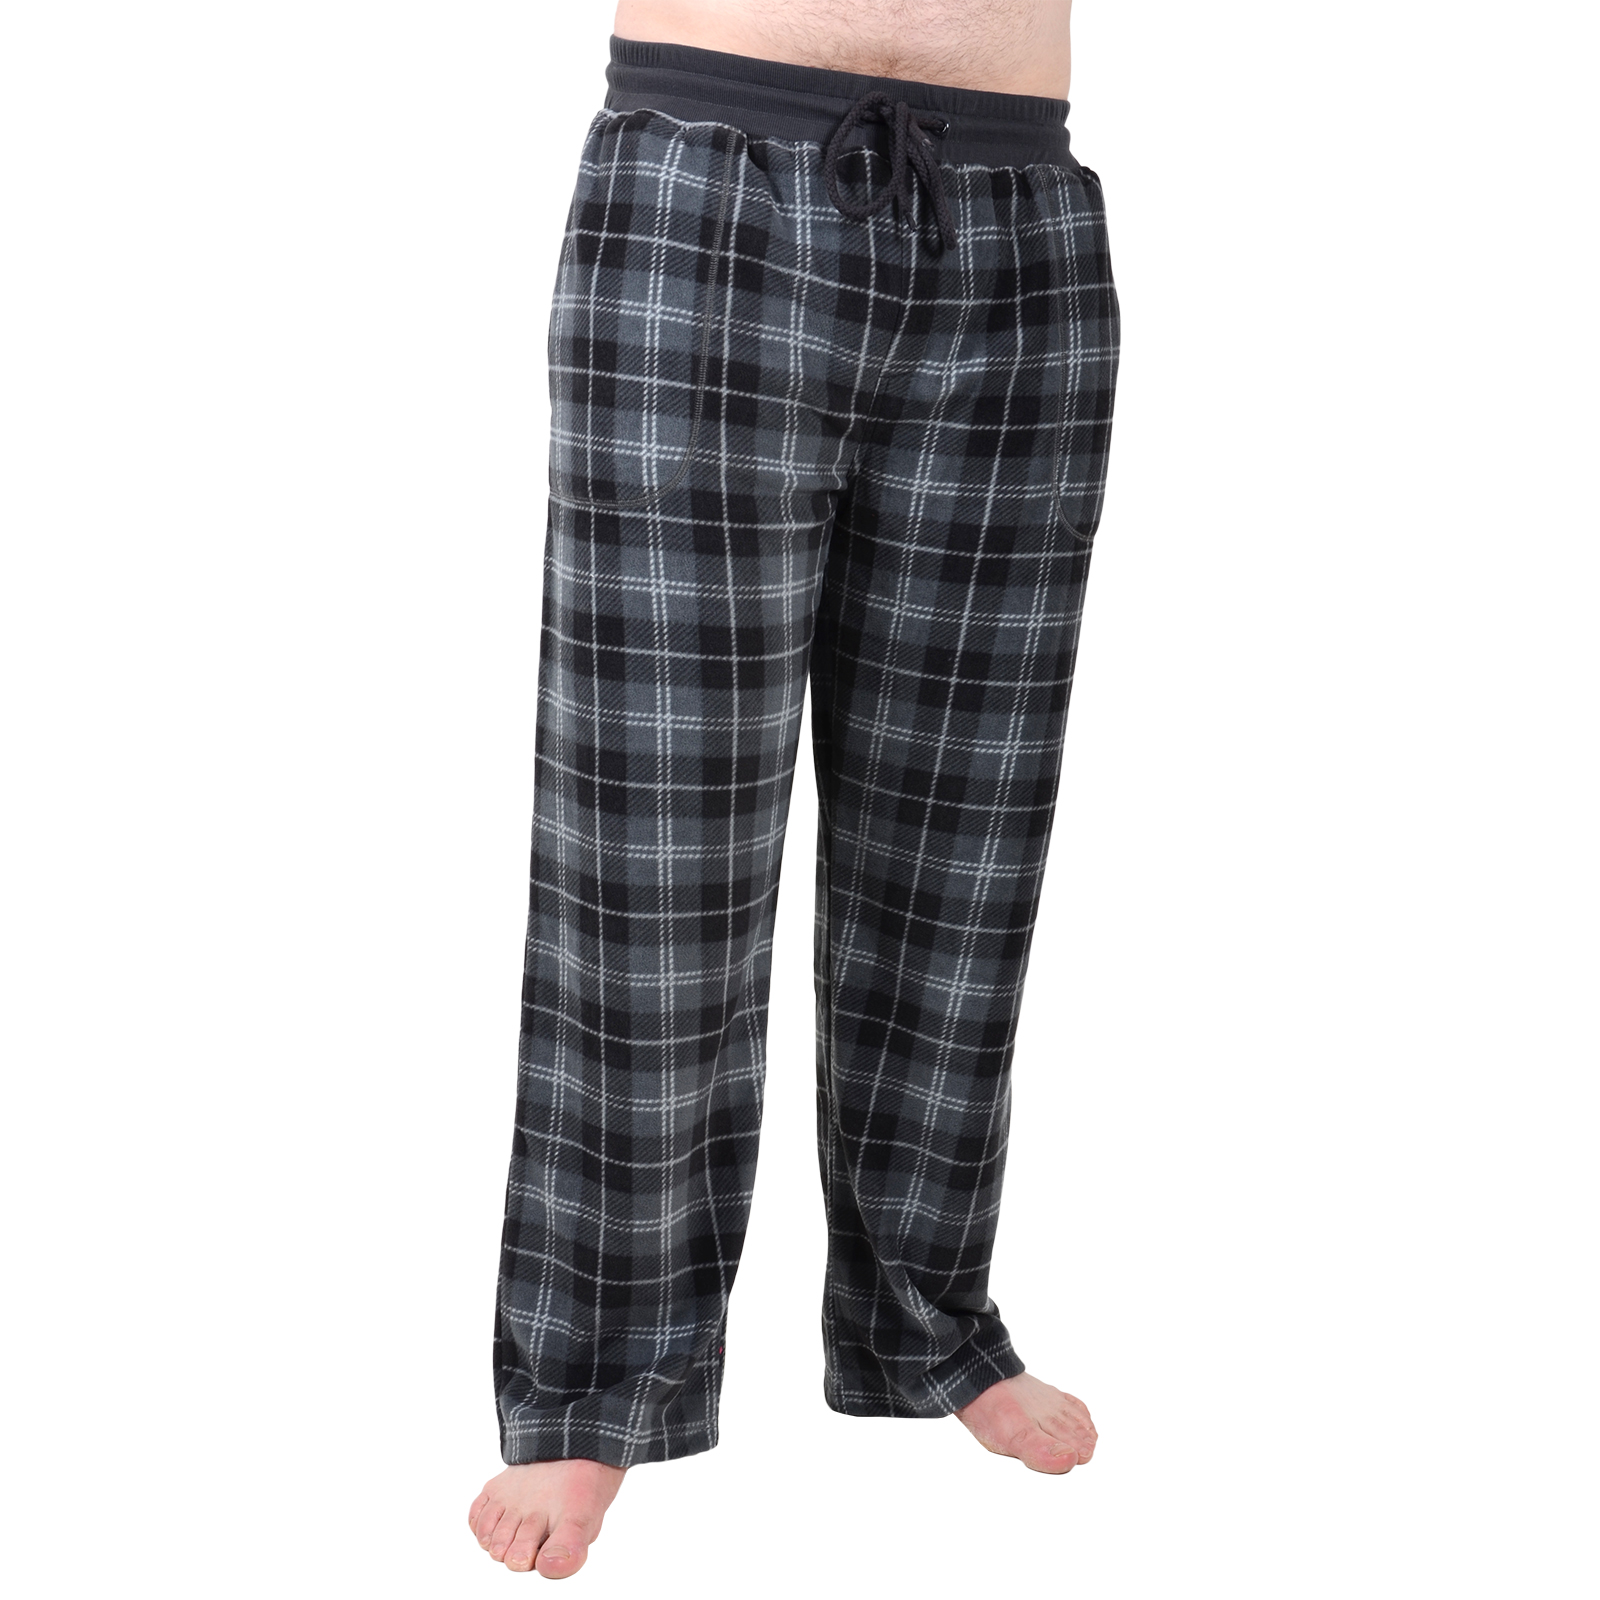 McCall's Pattern Men's Pajama Pants. Showing 40 of results that match your query. Search Product Result. Product - Kwik Sew Pattern Aprons and Bags. Product Image. Price $ Product Title. Kwik Sew Pattern Aprons and Bags. See Details. Product - Butterick Pattern Teepee and Mat, 1 Size Only. Product Image.